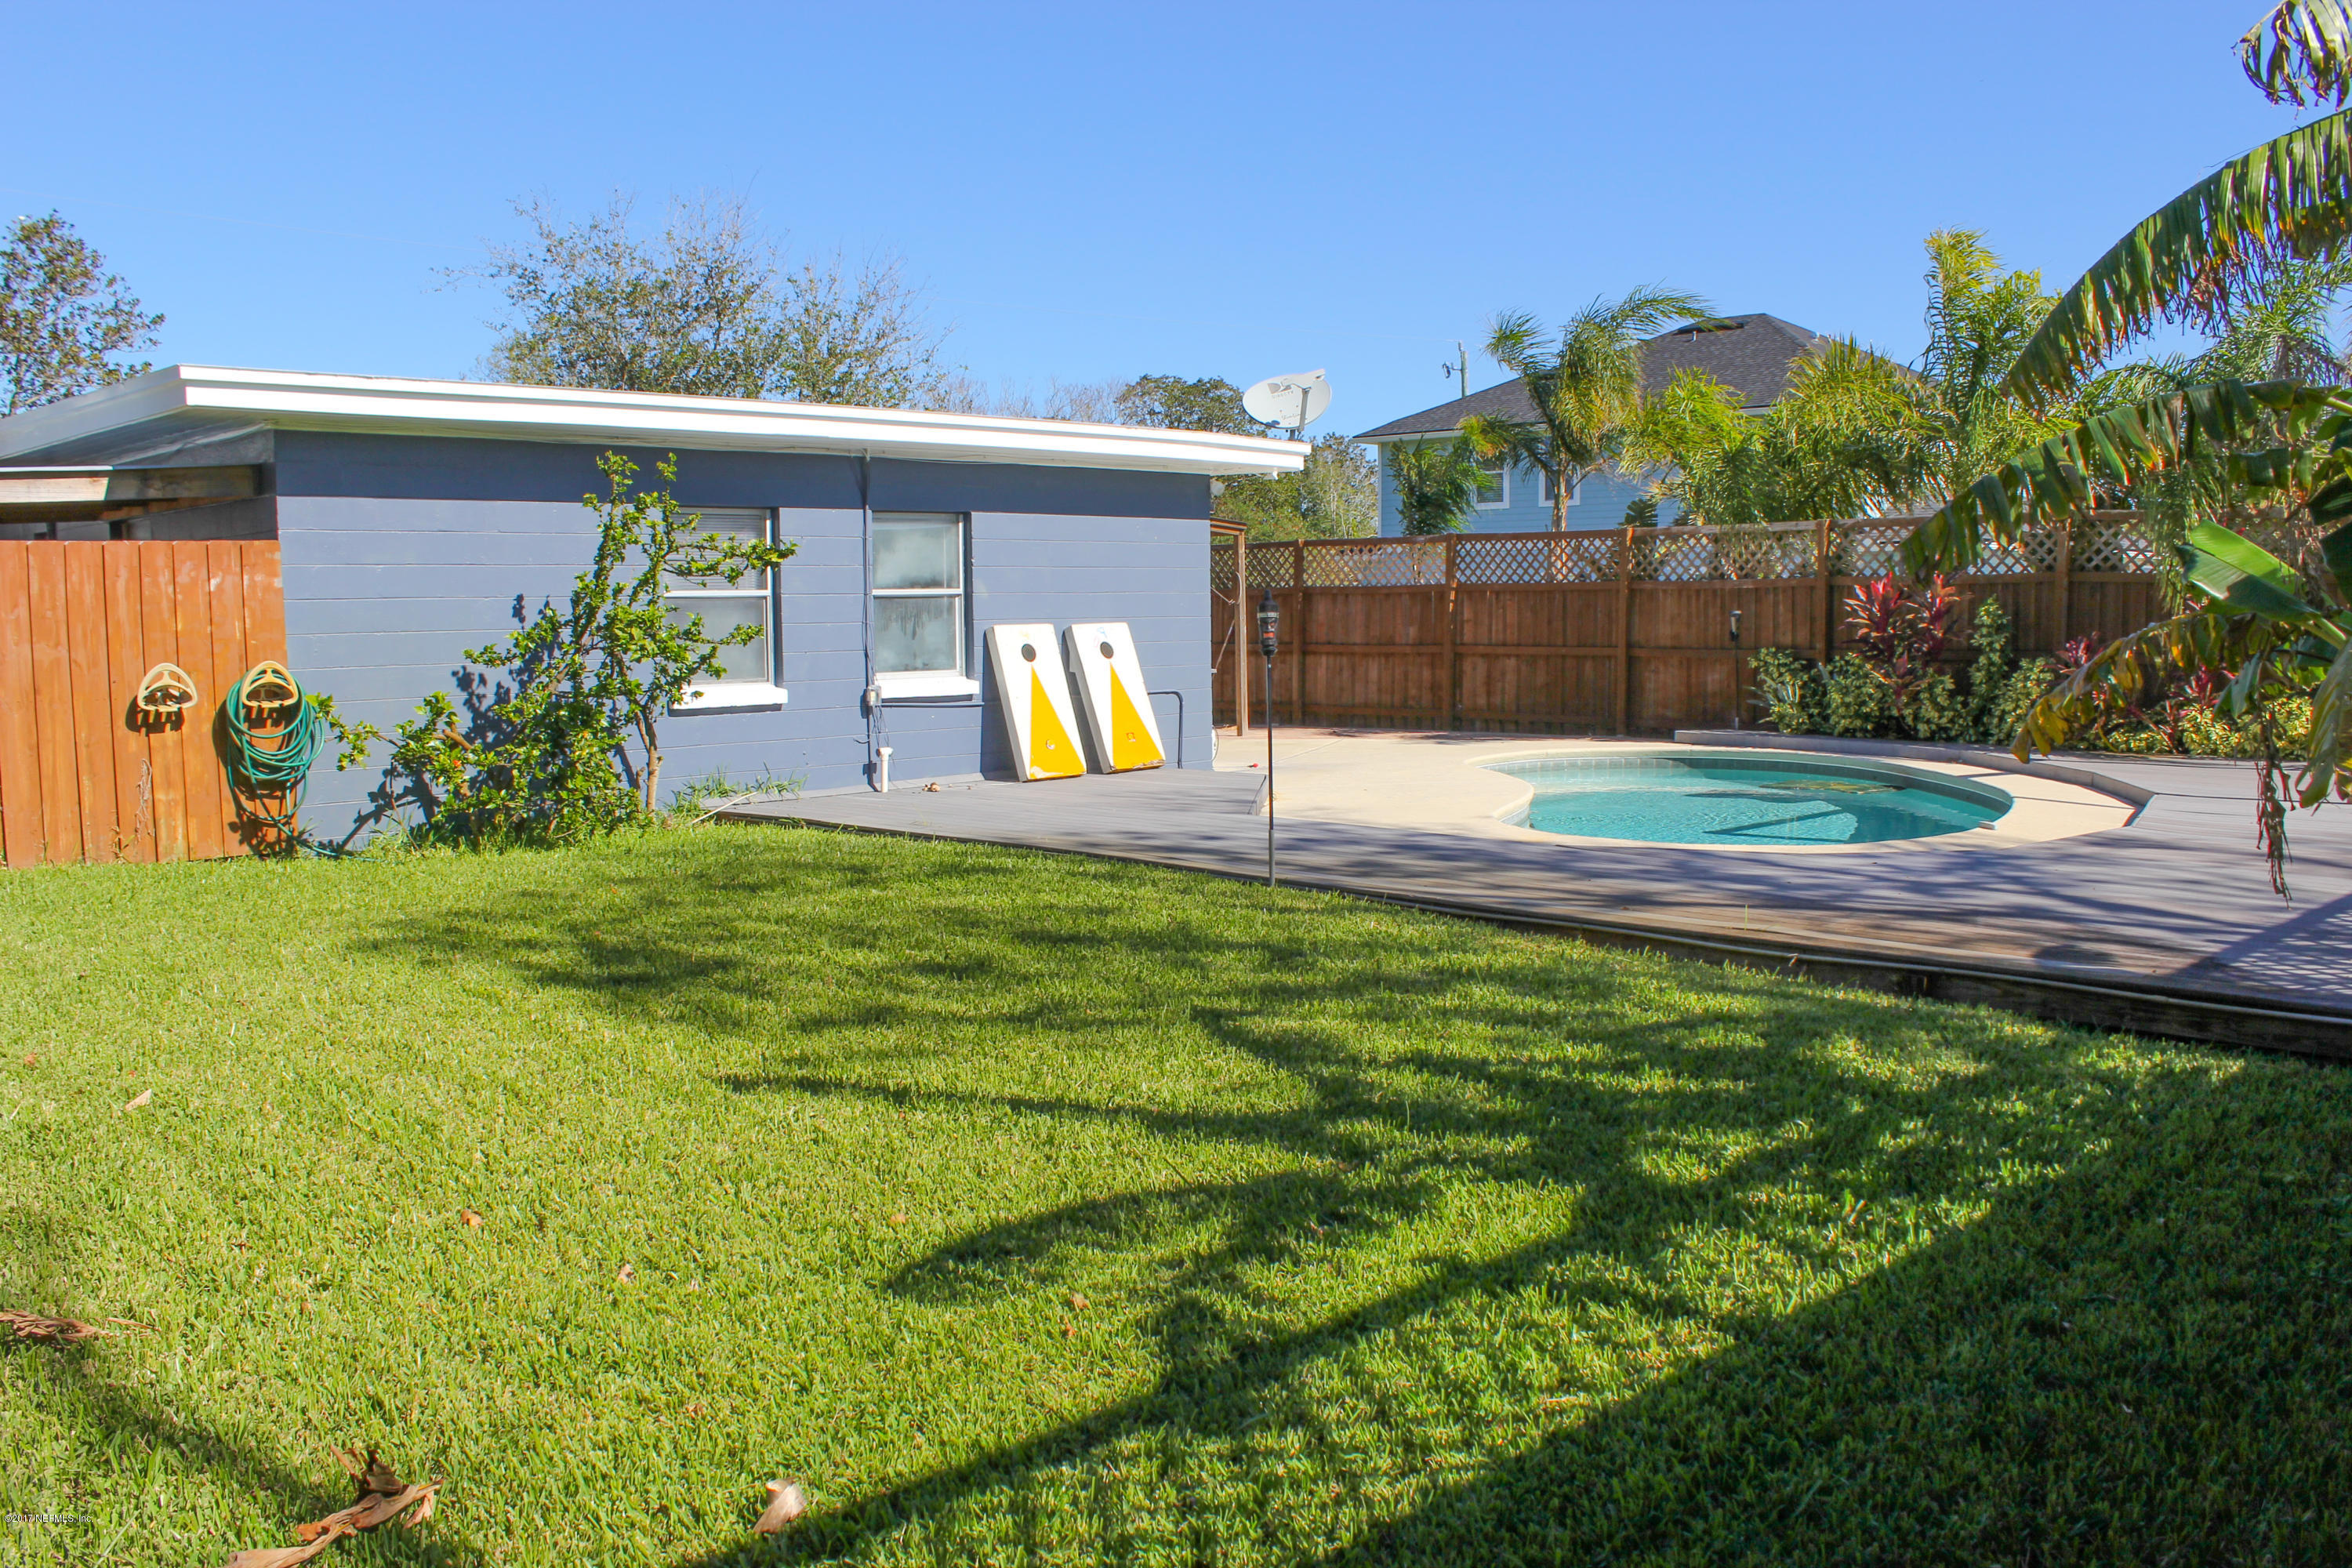 802 5TH, JACKSONVILLE BEACH, FLORIDA 32250, 3 Bedrooms Bedrooms, ,2 BathroomsBathrooms,Residential - single family,For sale,5TH,900592